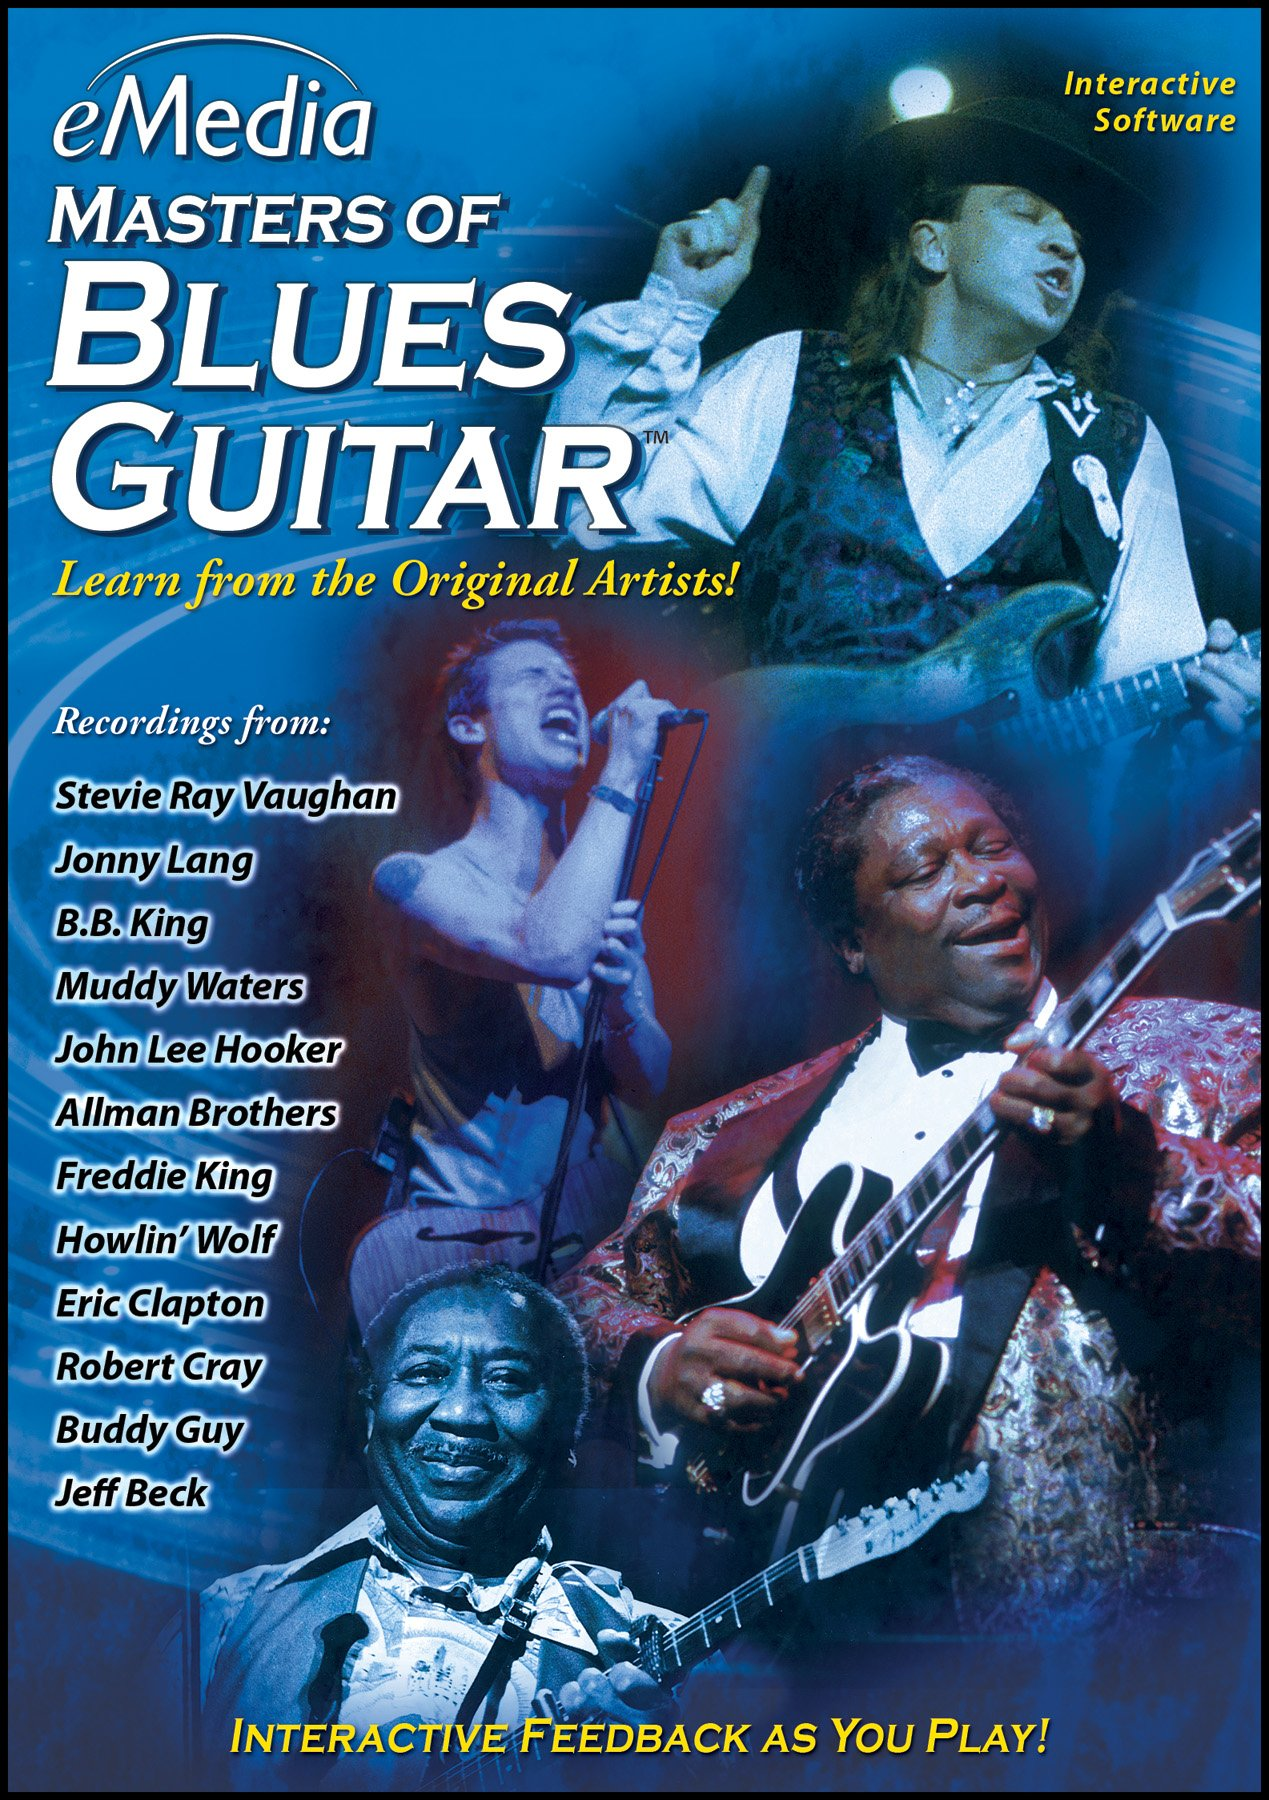 eMedia Masters of Blues Guitar [PC Download]